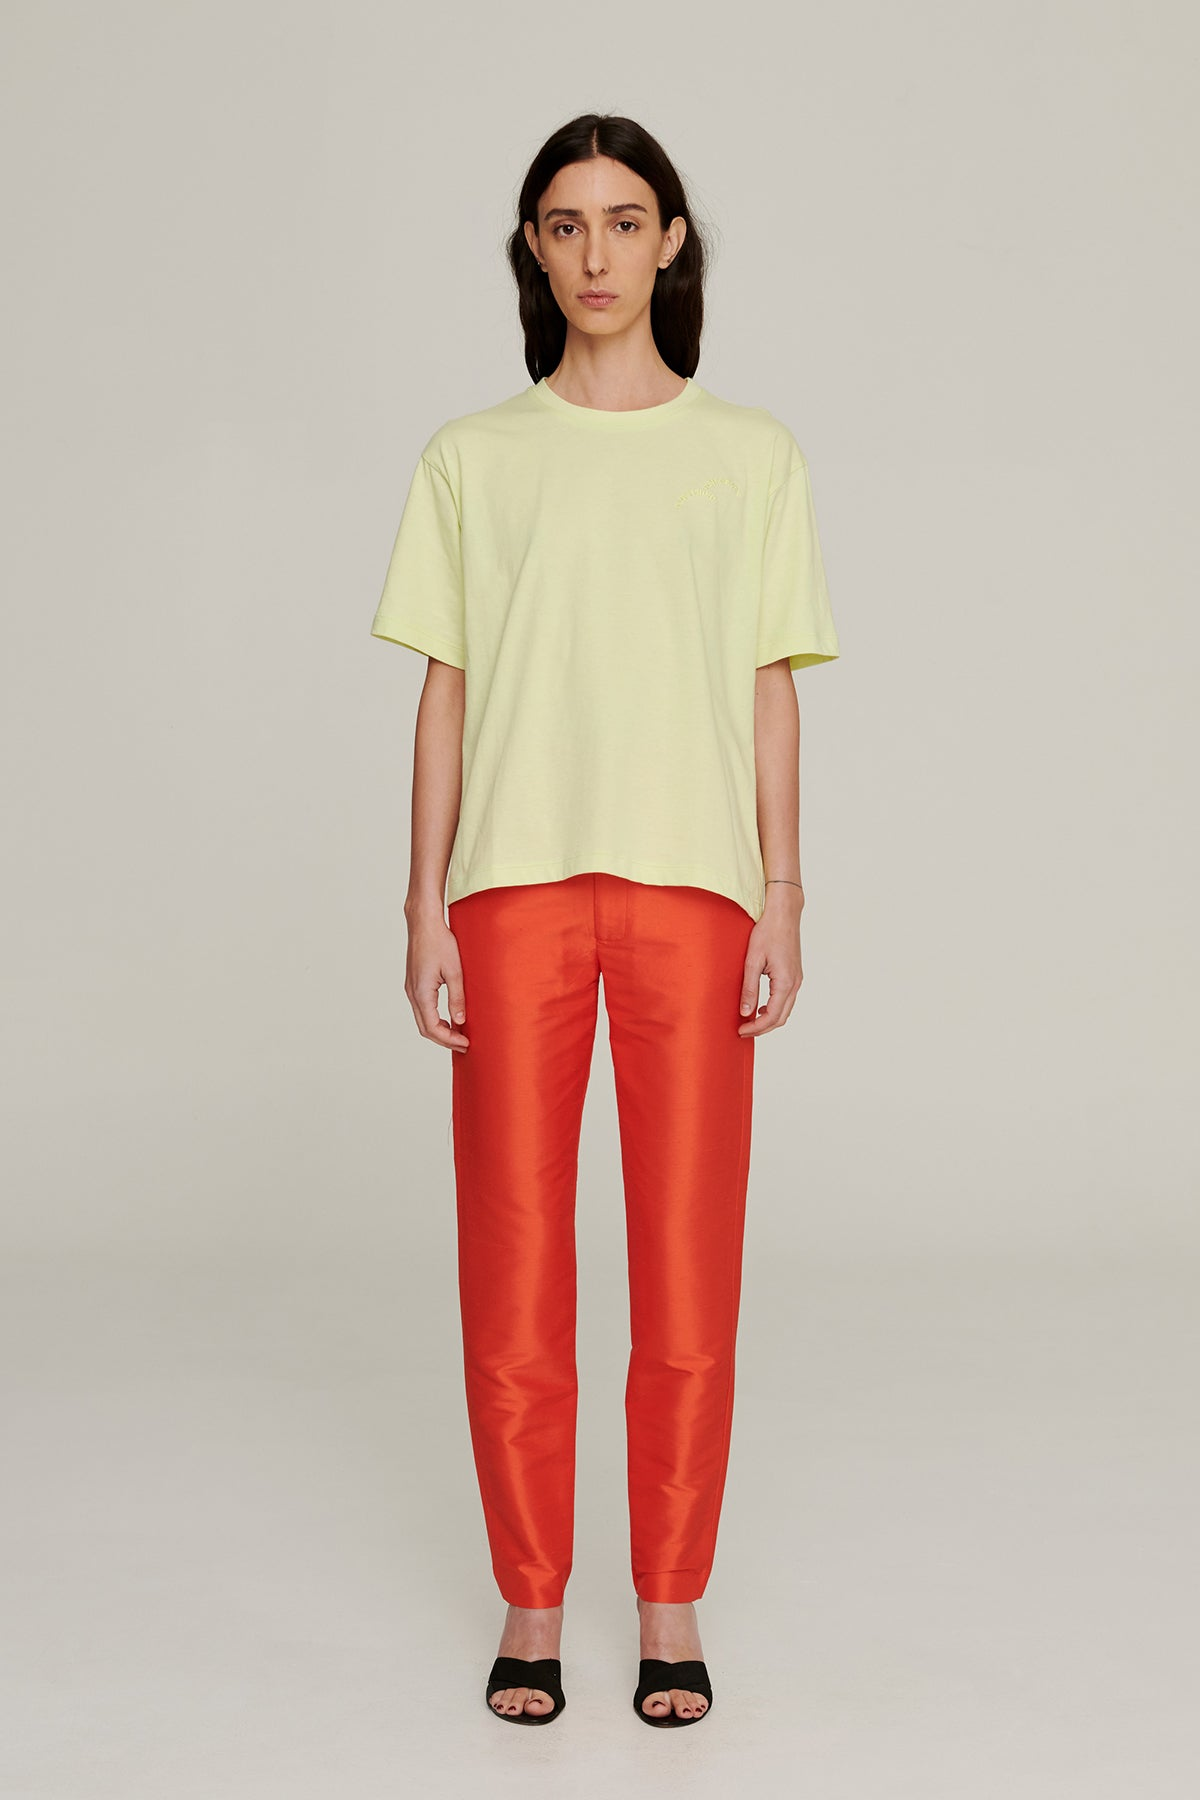 Permanent Vacation Cigarette Trouser // Tangerine